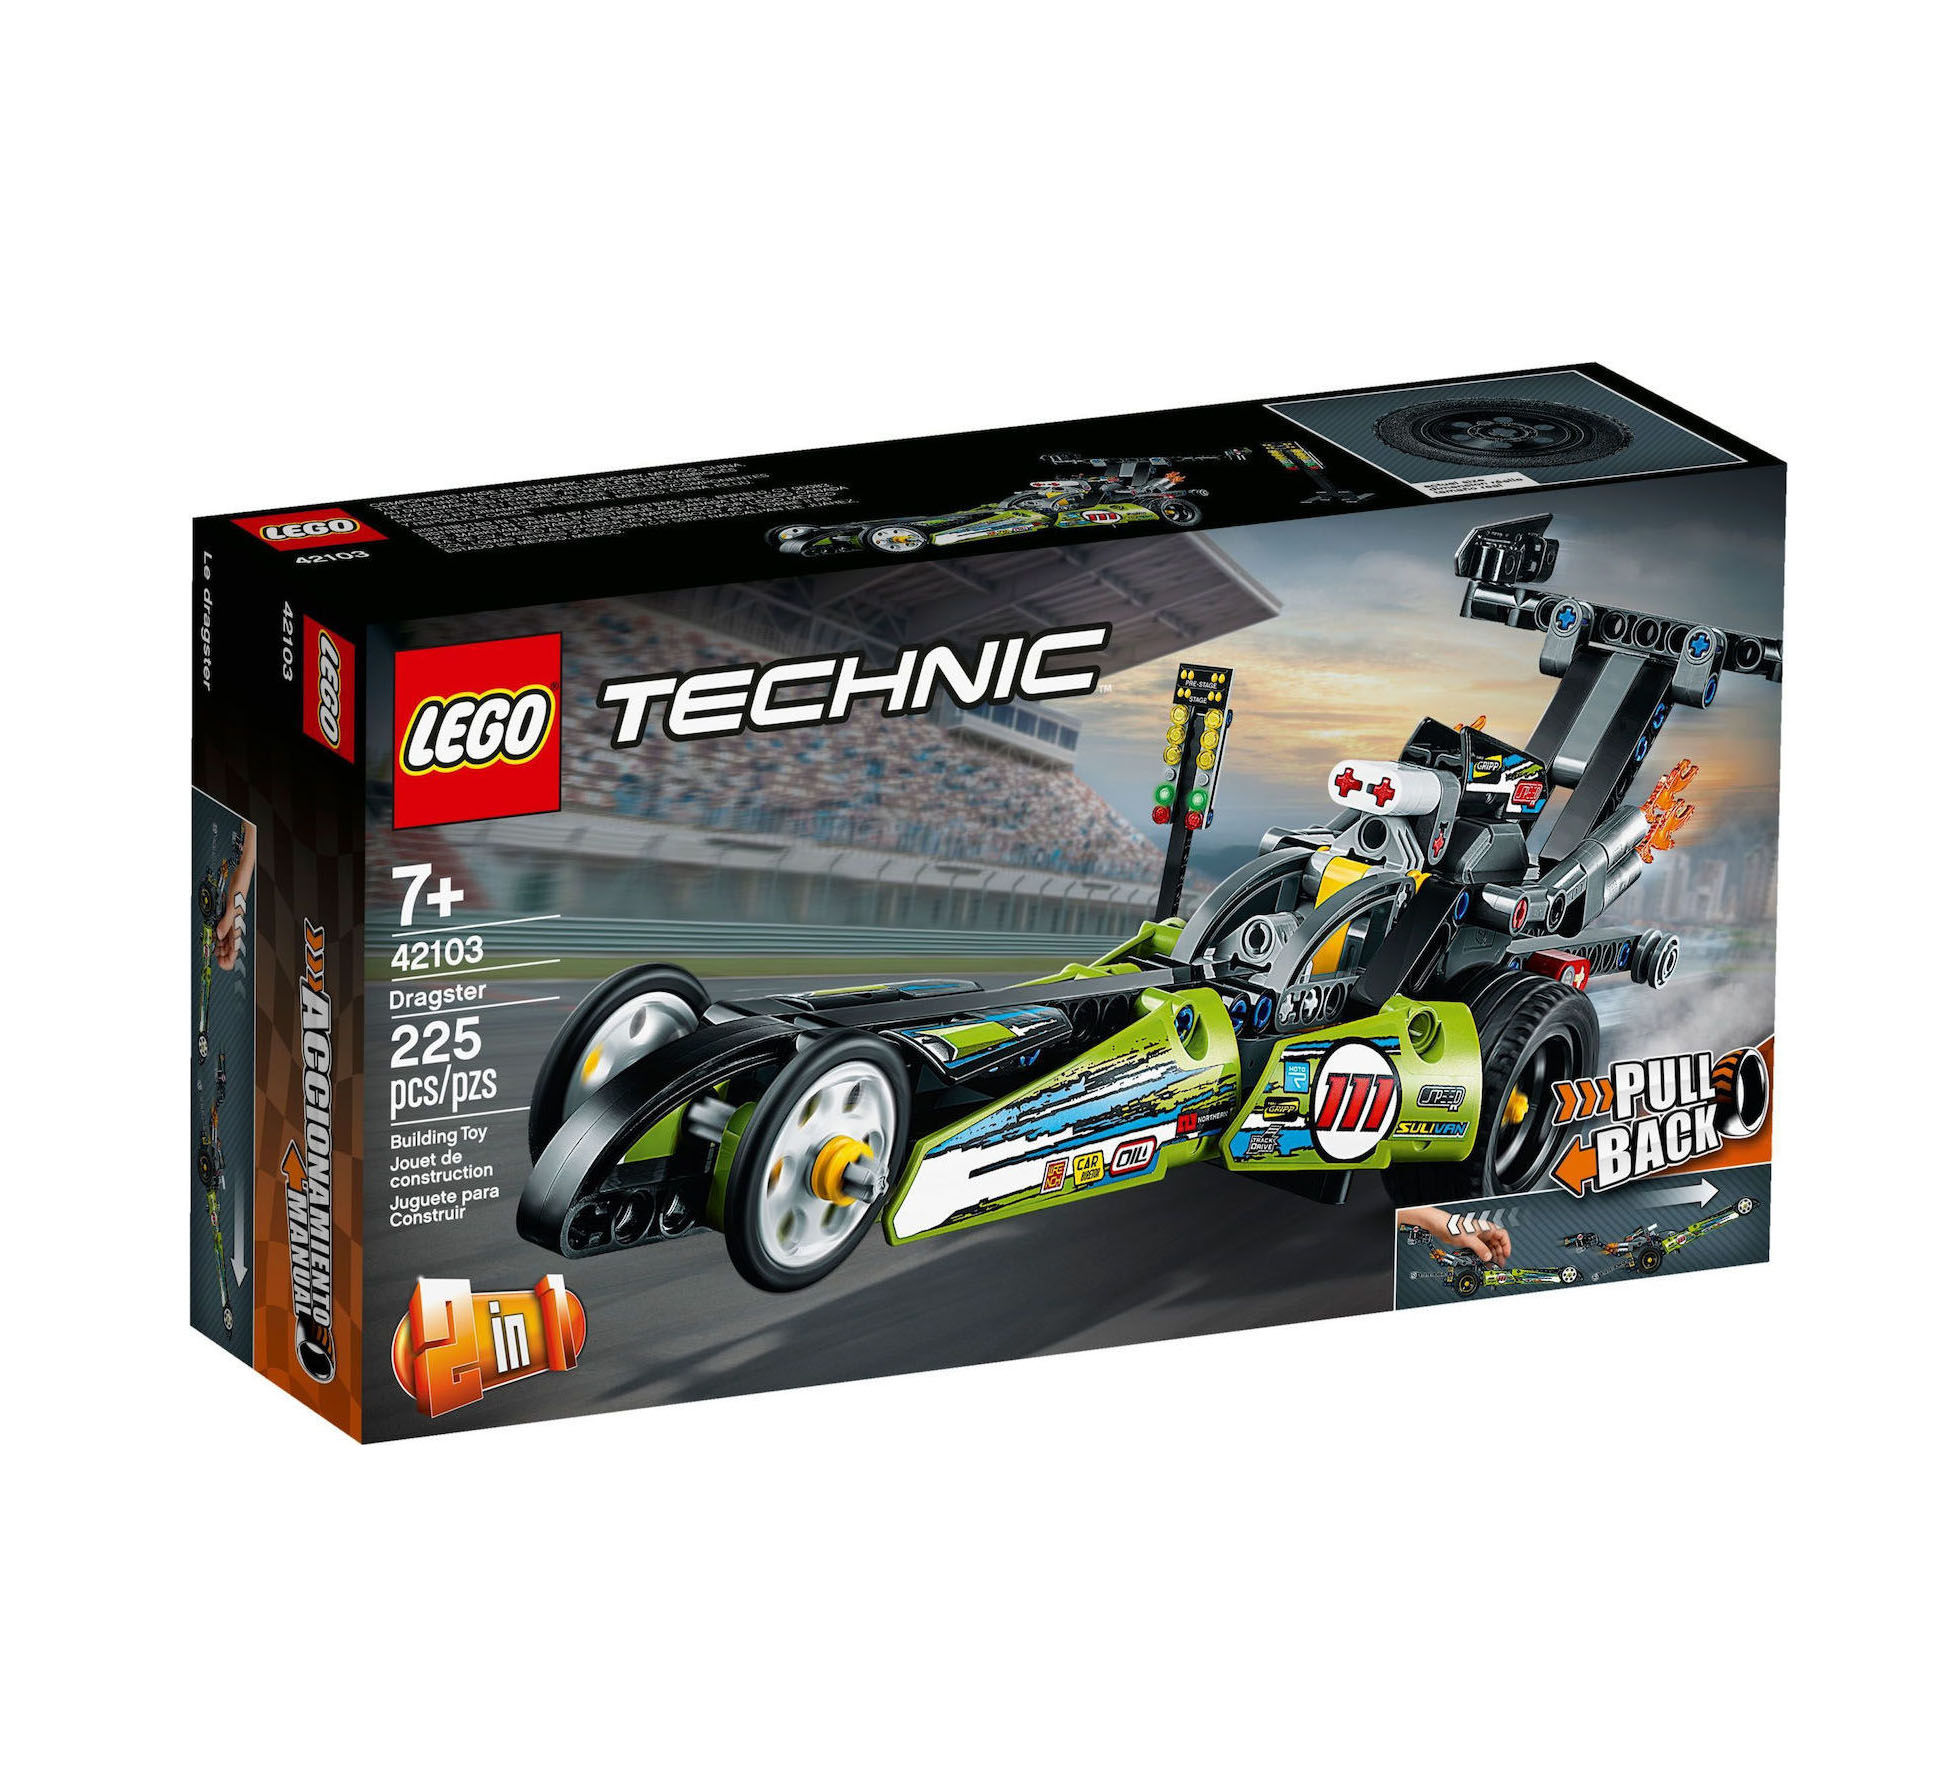 Lego Technic: Dragster 42103